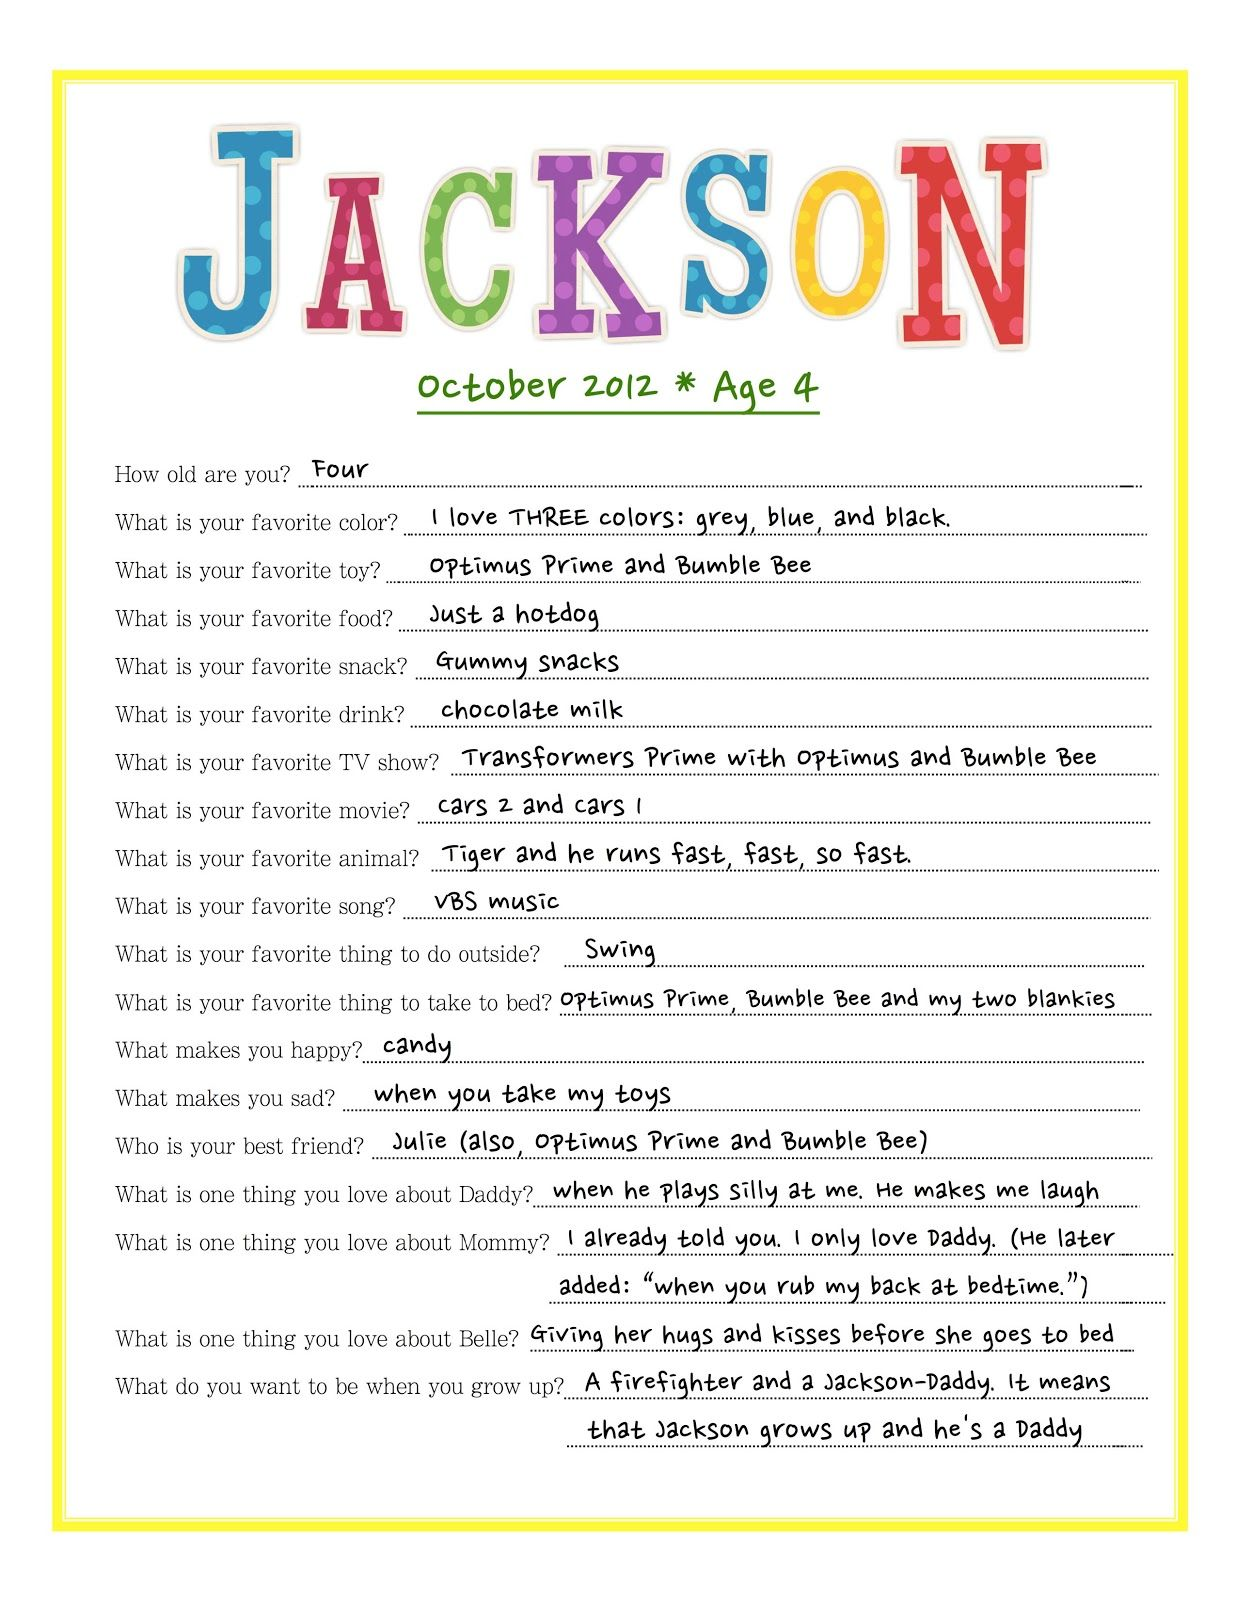 Birthday Interview literally reminds me of my Jackson